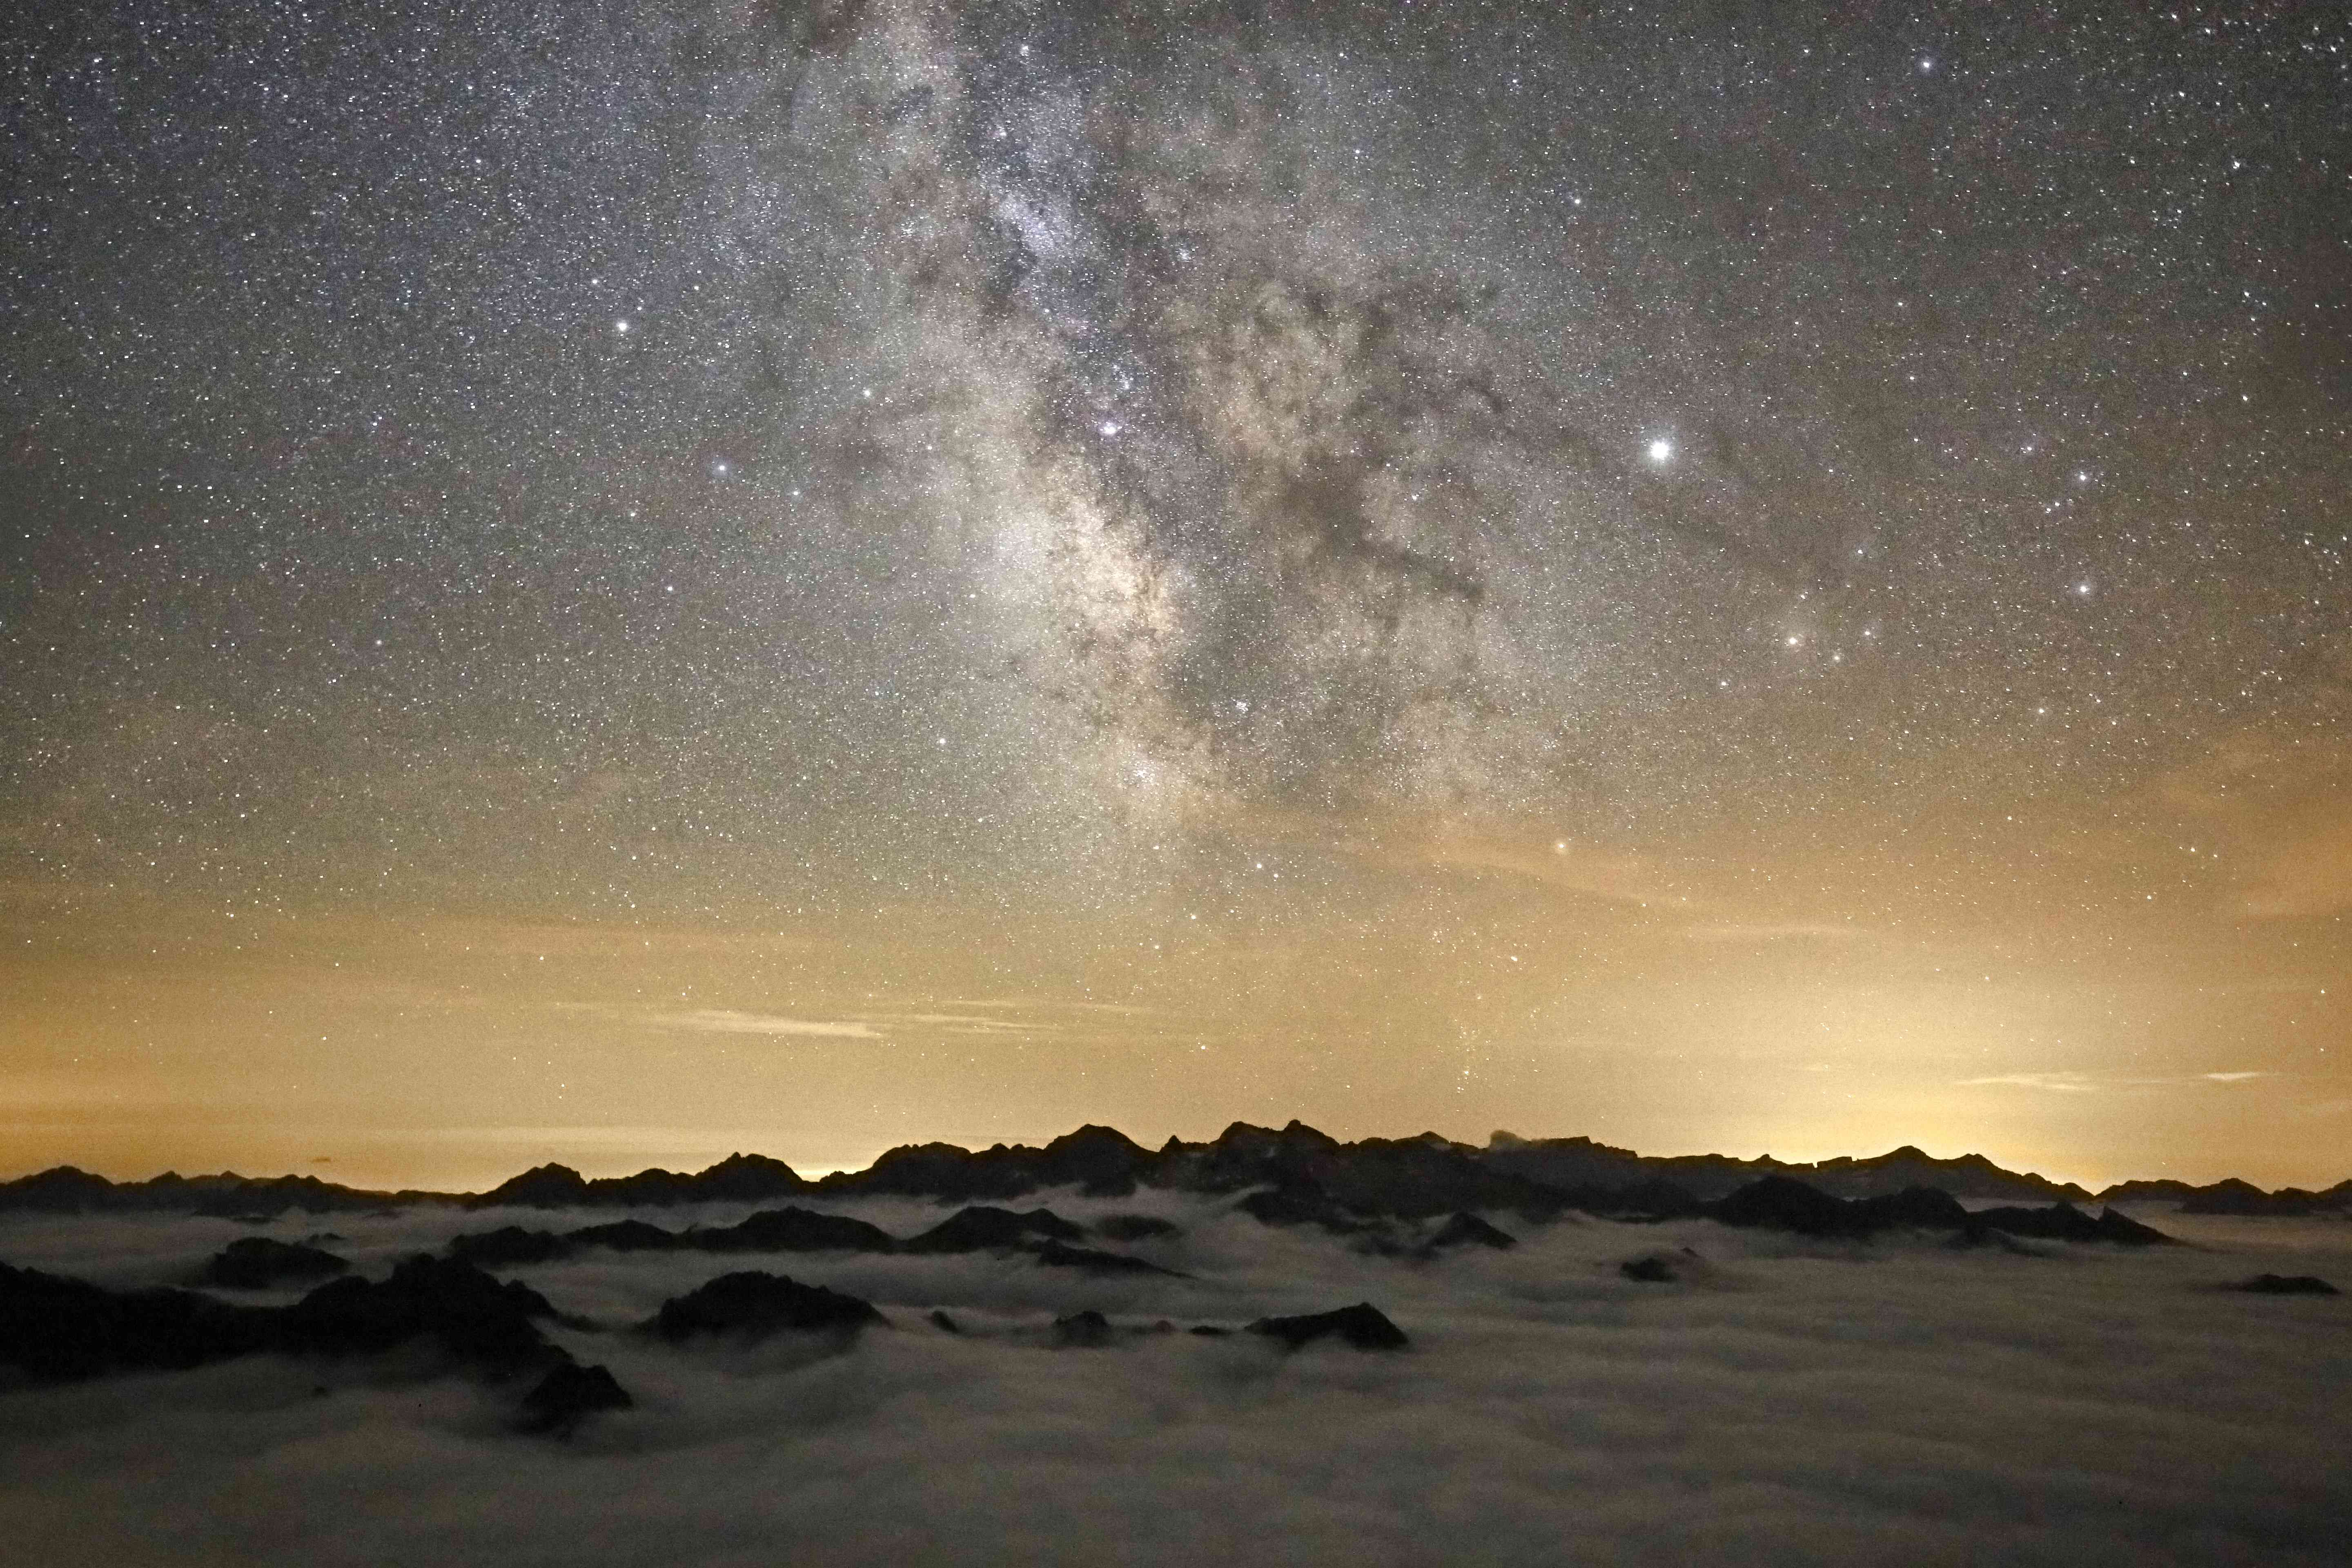 Milky Way over cloudy peaks with light pollution from Barcelona